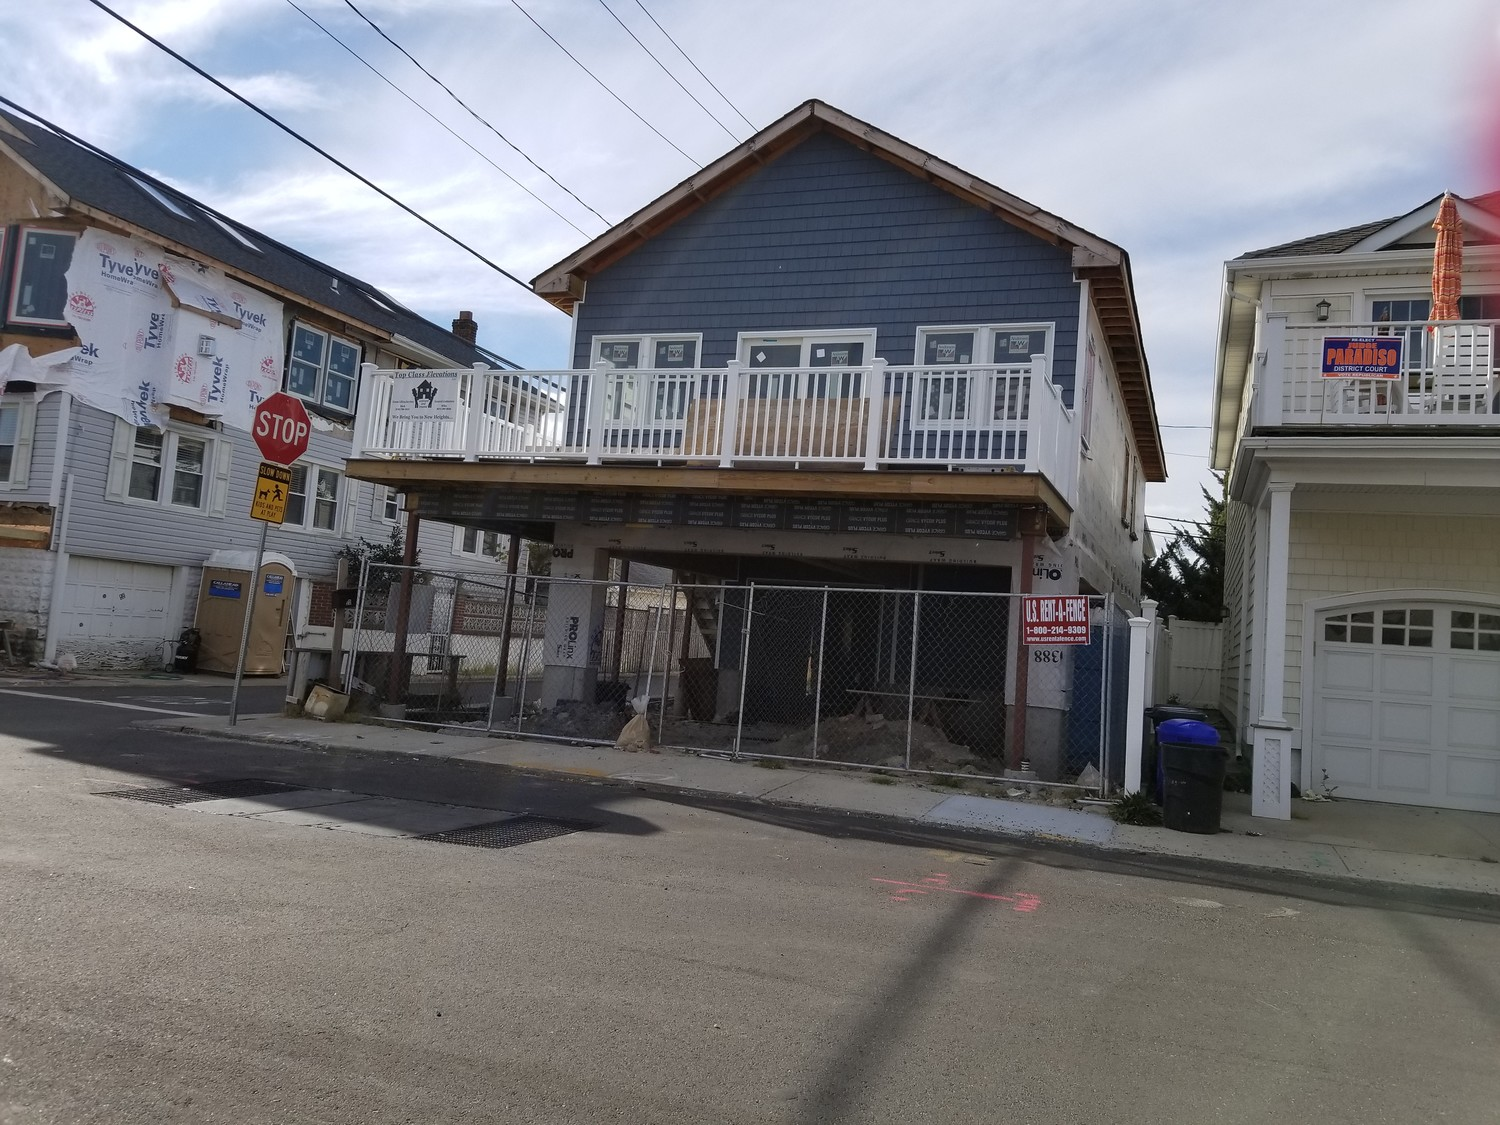 "West End resident Terri Dunbar hired contractor Fred Gutterman, of JBJ General Contracting, in 2016, who she said lifted her house, did ""a shoddy job,"" then abandoned the work and disappeared with her money. Her unfinished home is pictured above in November 2017."